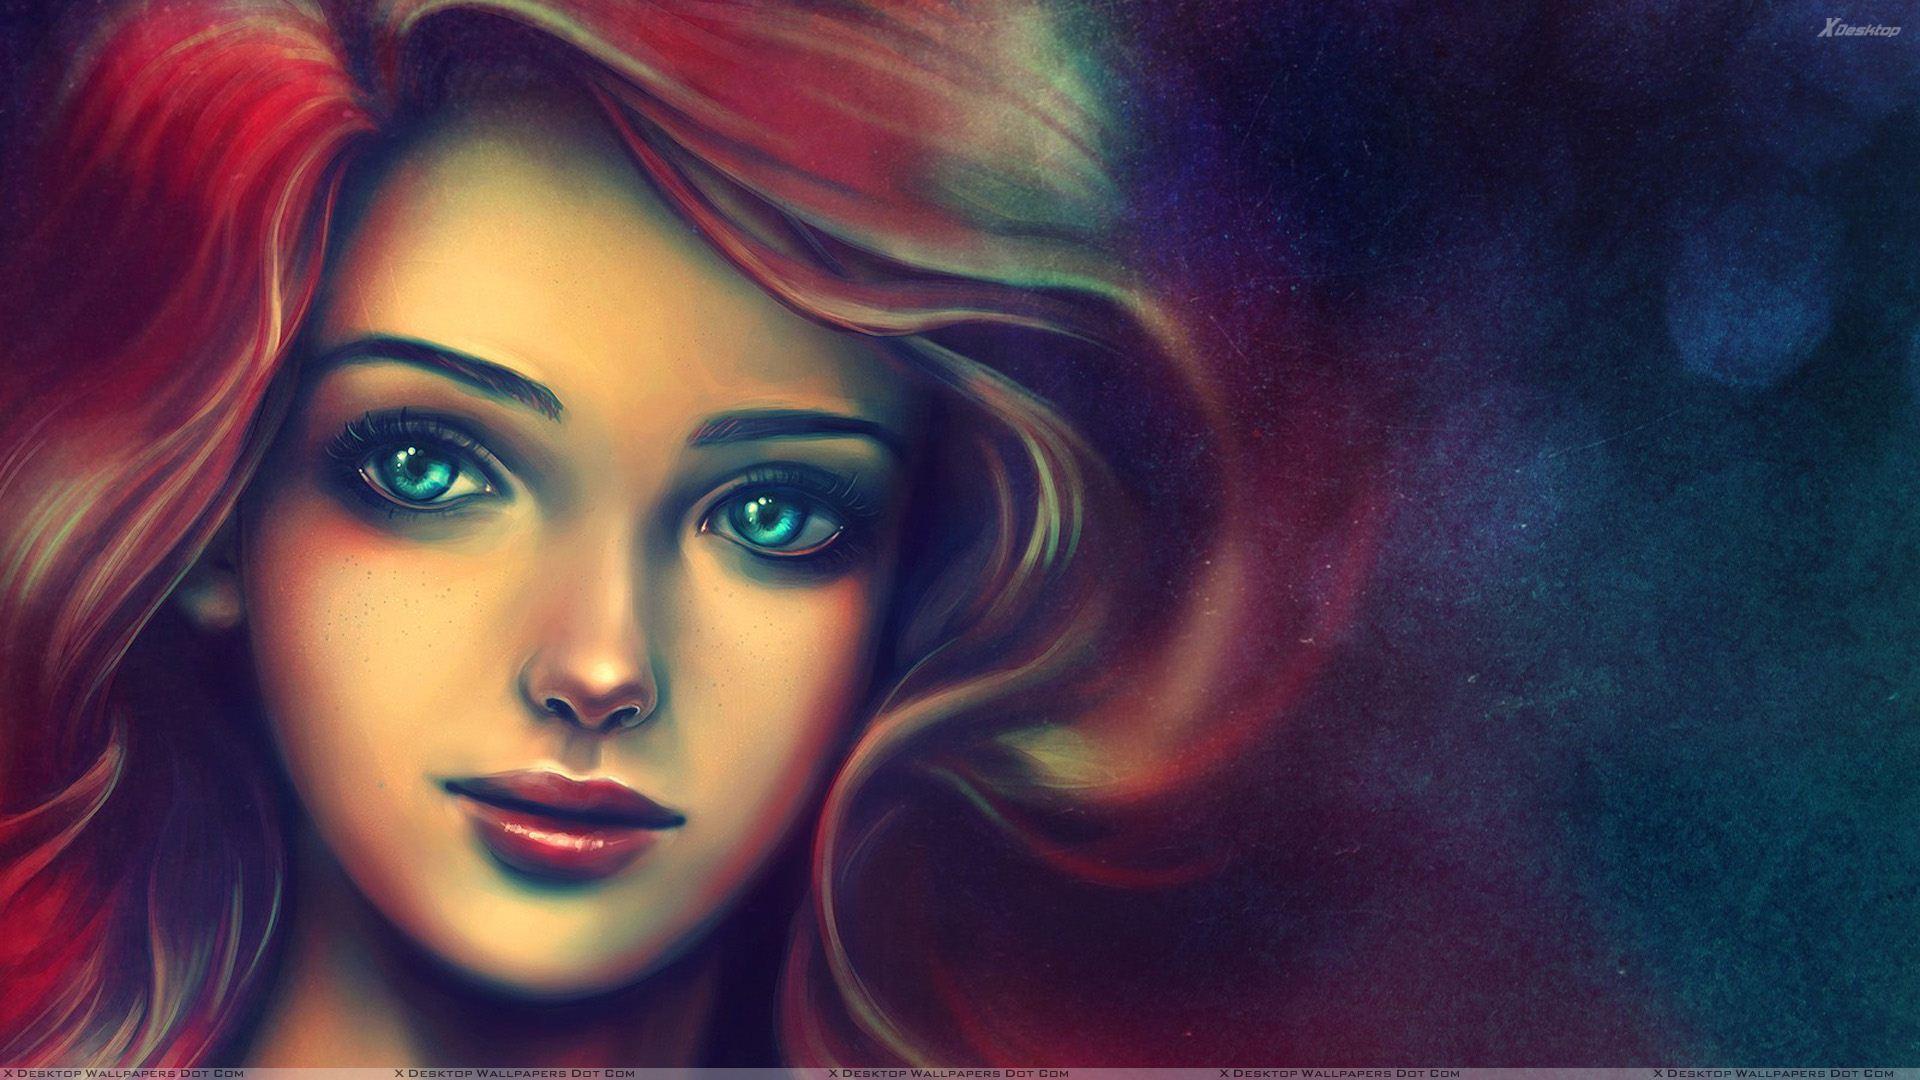 You are viewing wallpaper titled beautiful sketch